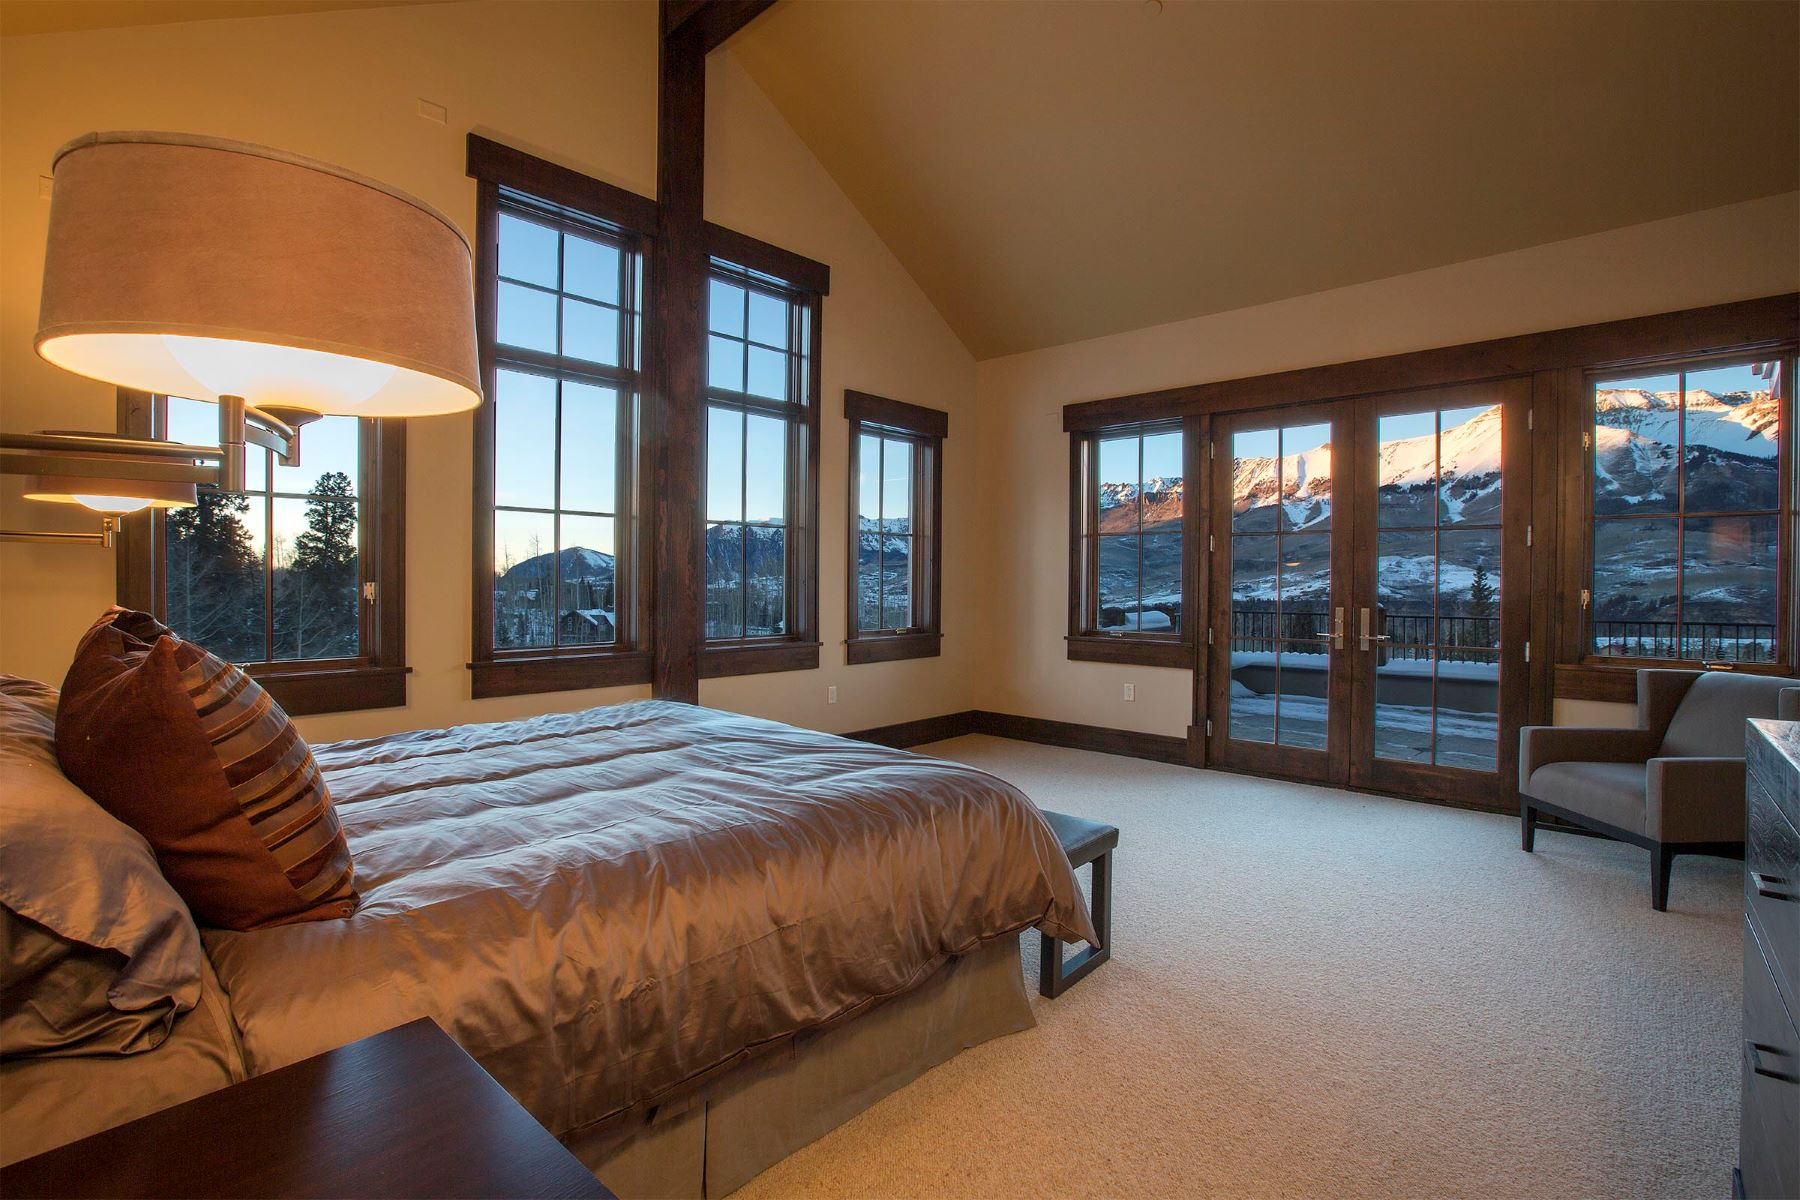 Condominio por un Venta en Elkstone 21, Unit 401 500 Mountain Village Blvd, Unit 401 Mountain Village, Telluride, Colorado, 81435 Estados Unidos